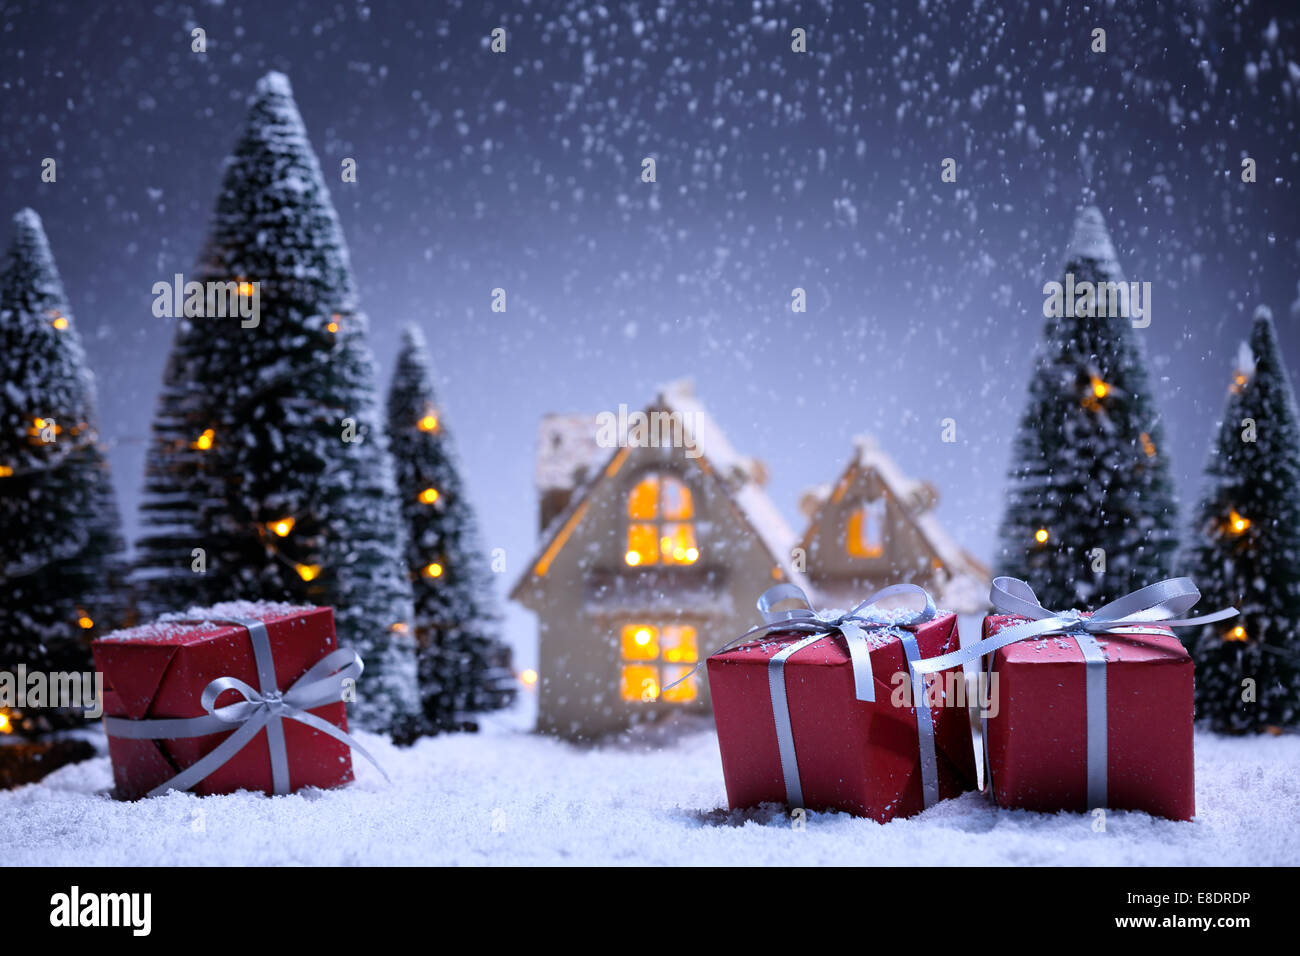 winter scene with Christmas tree,miniature of apartment and gift boxes.Christmas concept. - Stock Image